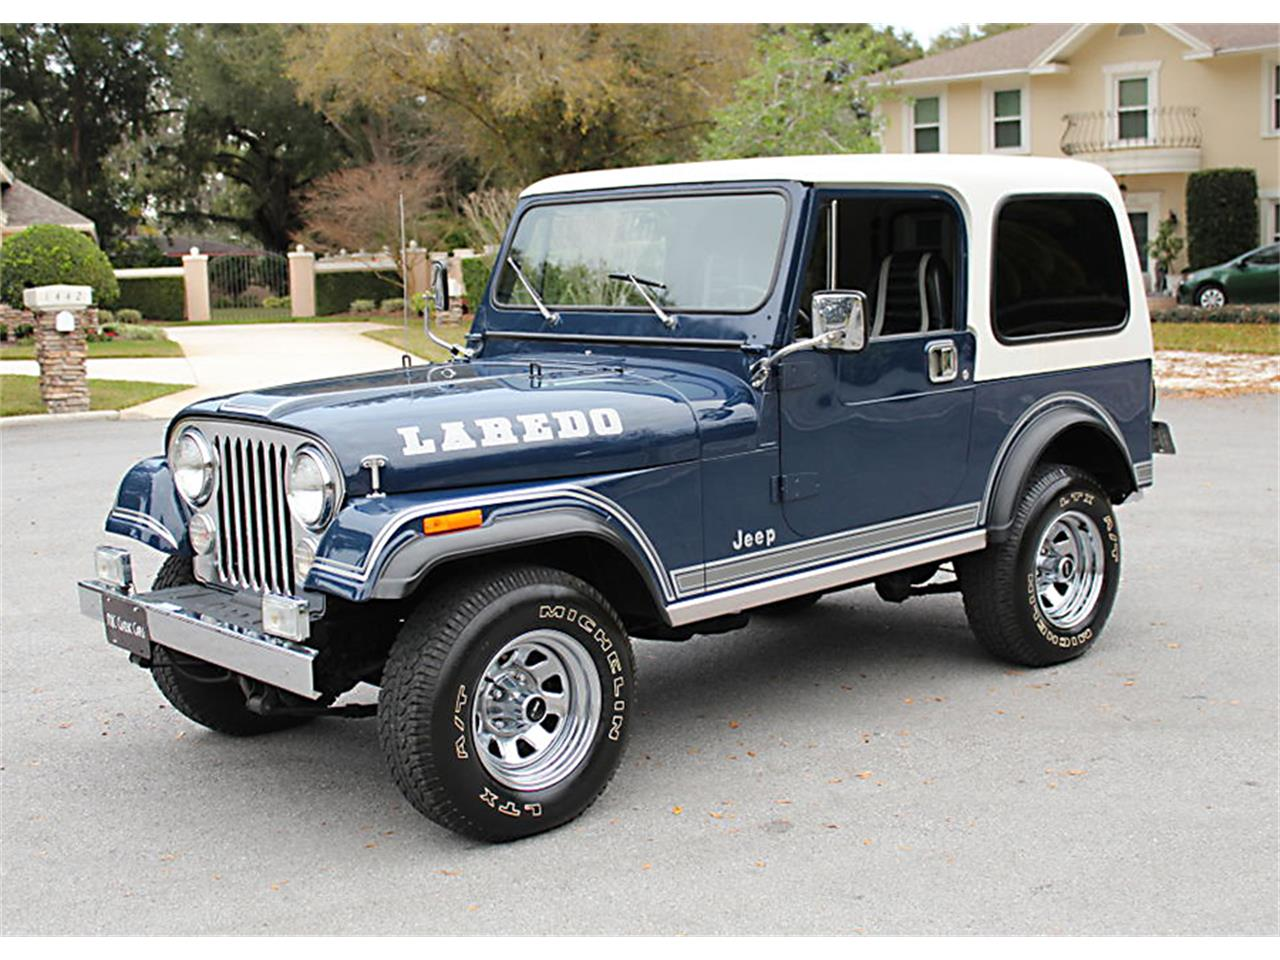 Large Picture of 1981 Jeep CJ7 located in Florida - $39,500.00 Offered by MJC Classic Cars - PH46